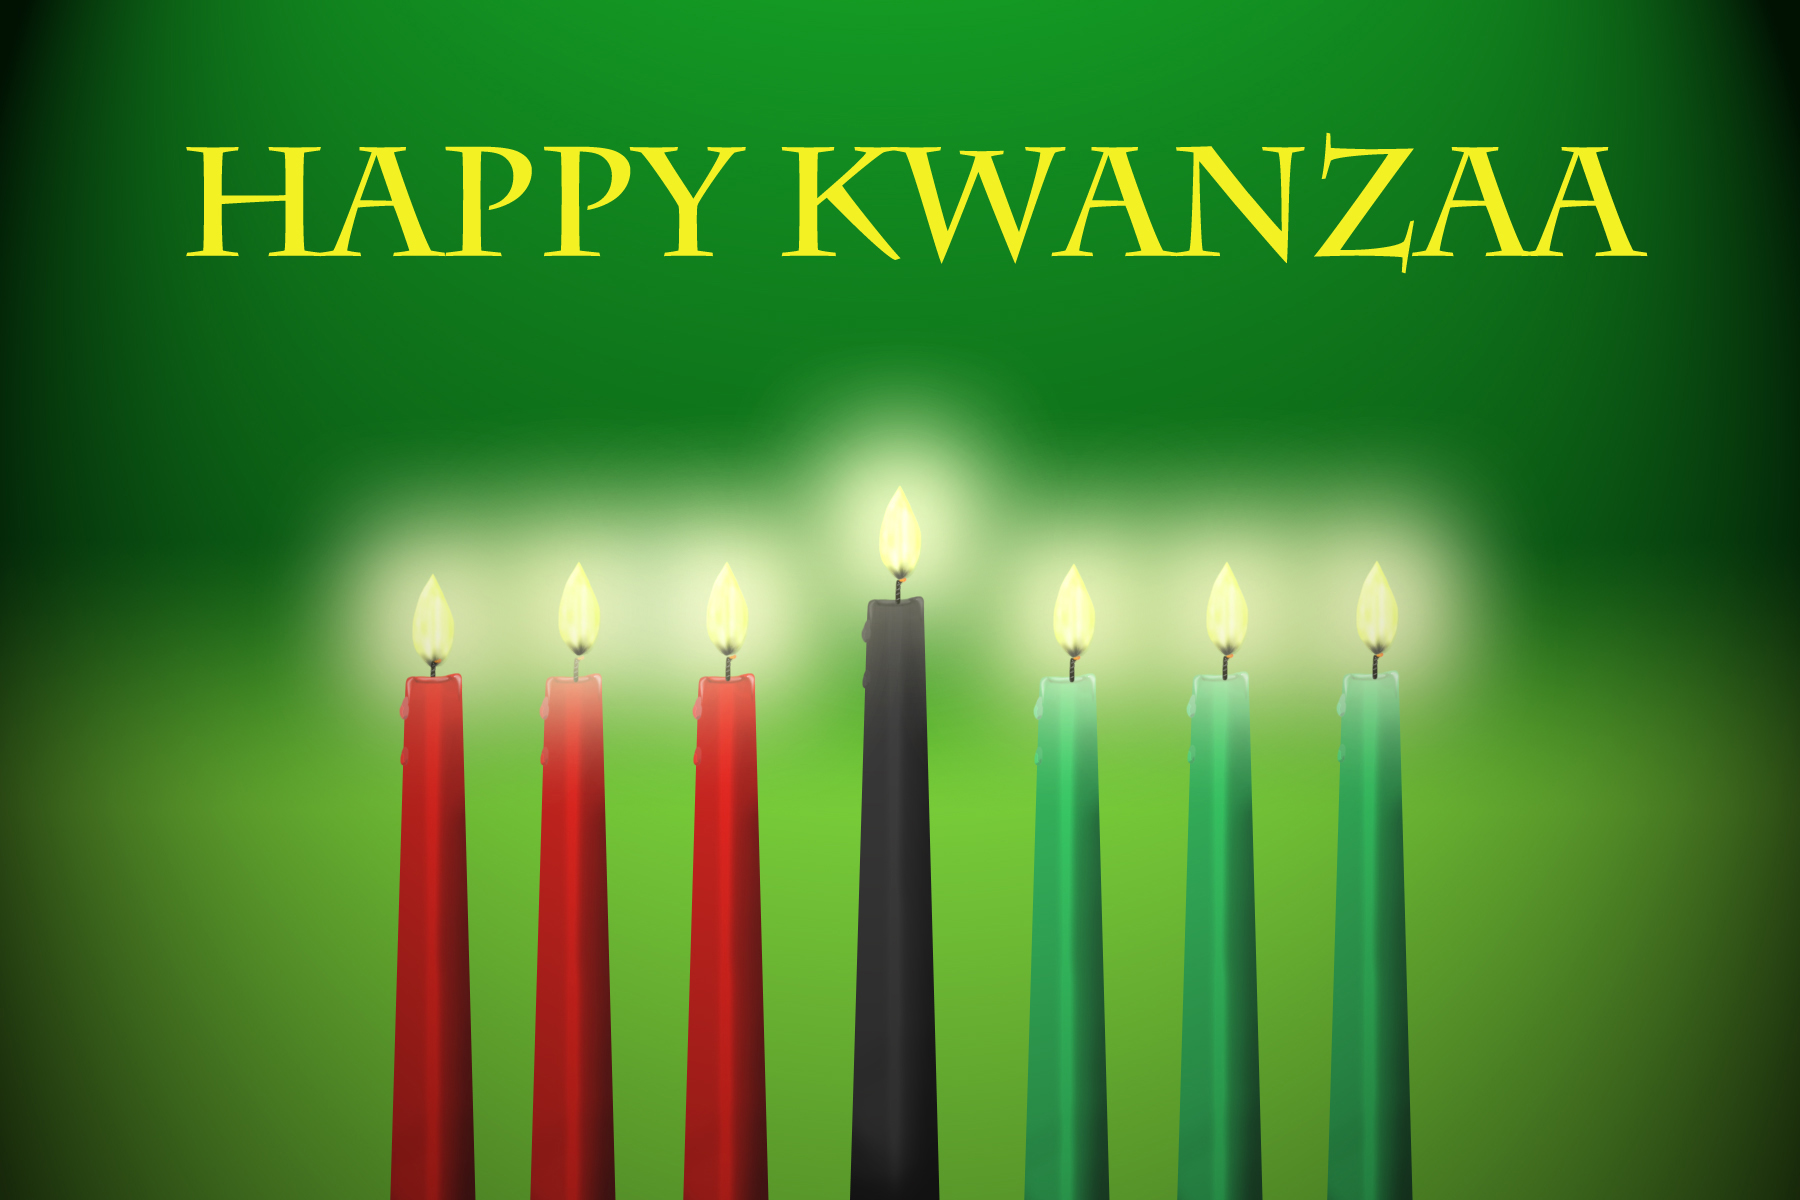 Happy kwanzaa help change the world the future of the county is now happy kwanzaa m4hsunfo